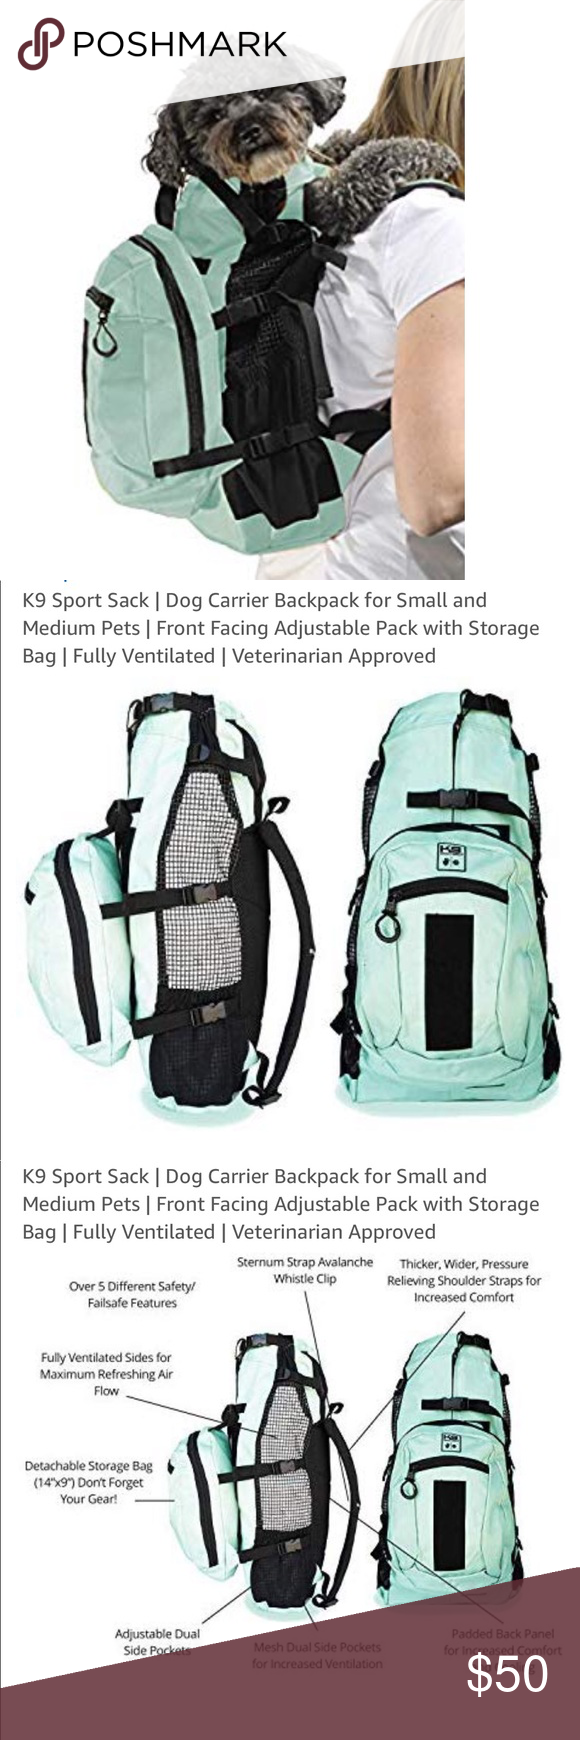 K9 Deluxe Dog Backpack K9 Sport Sack AIR PLUS Features